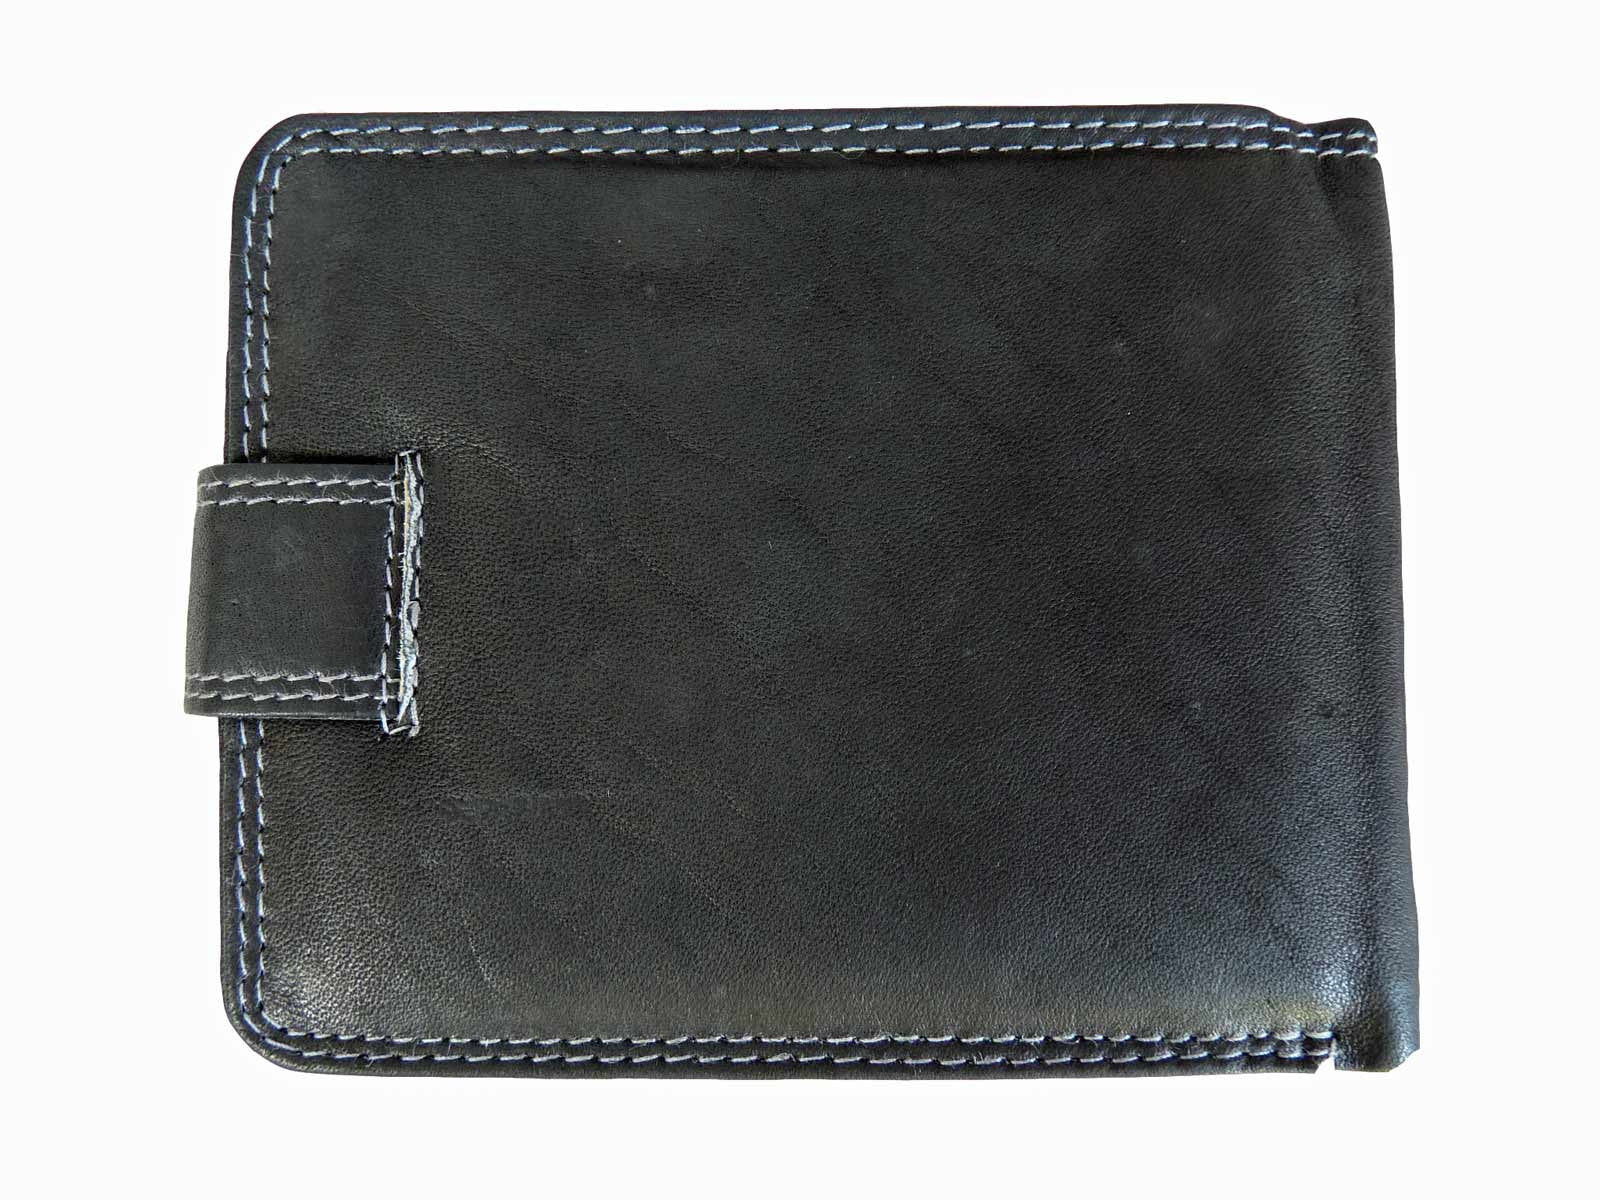 Gents Slimfold Jeans Wallets Roamlite RL410AWk REAR view